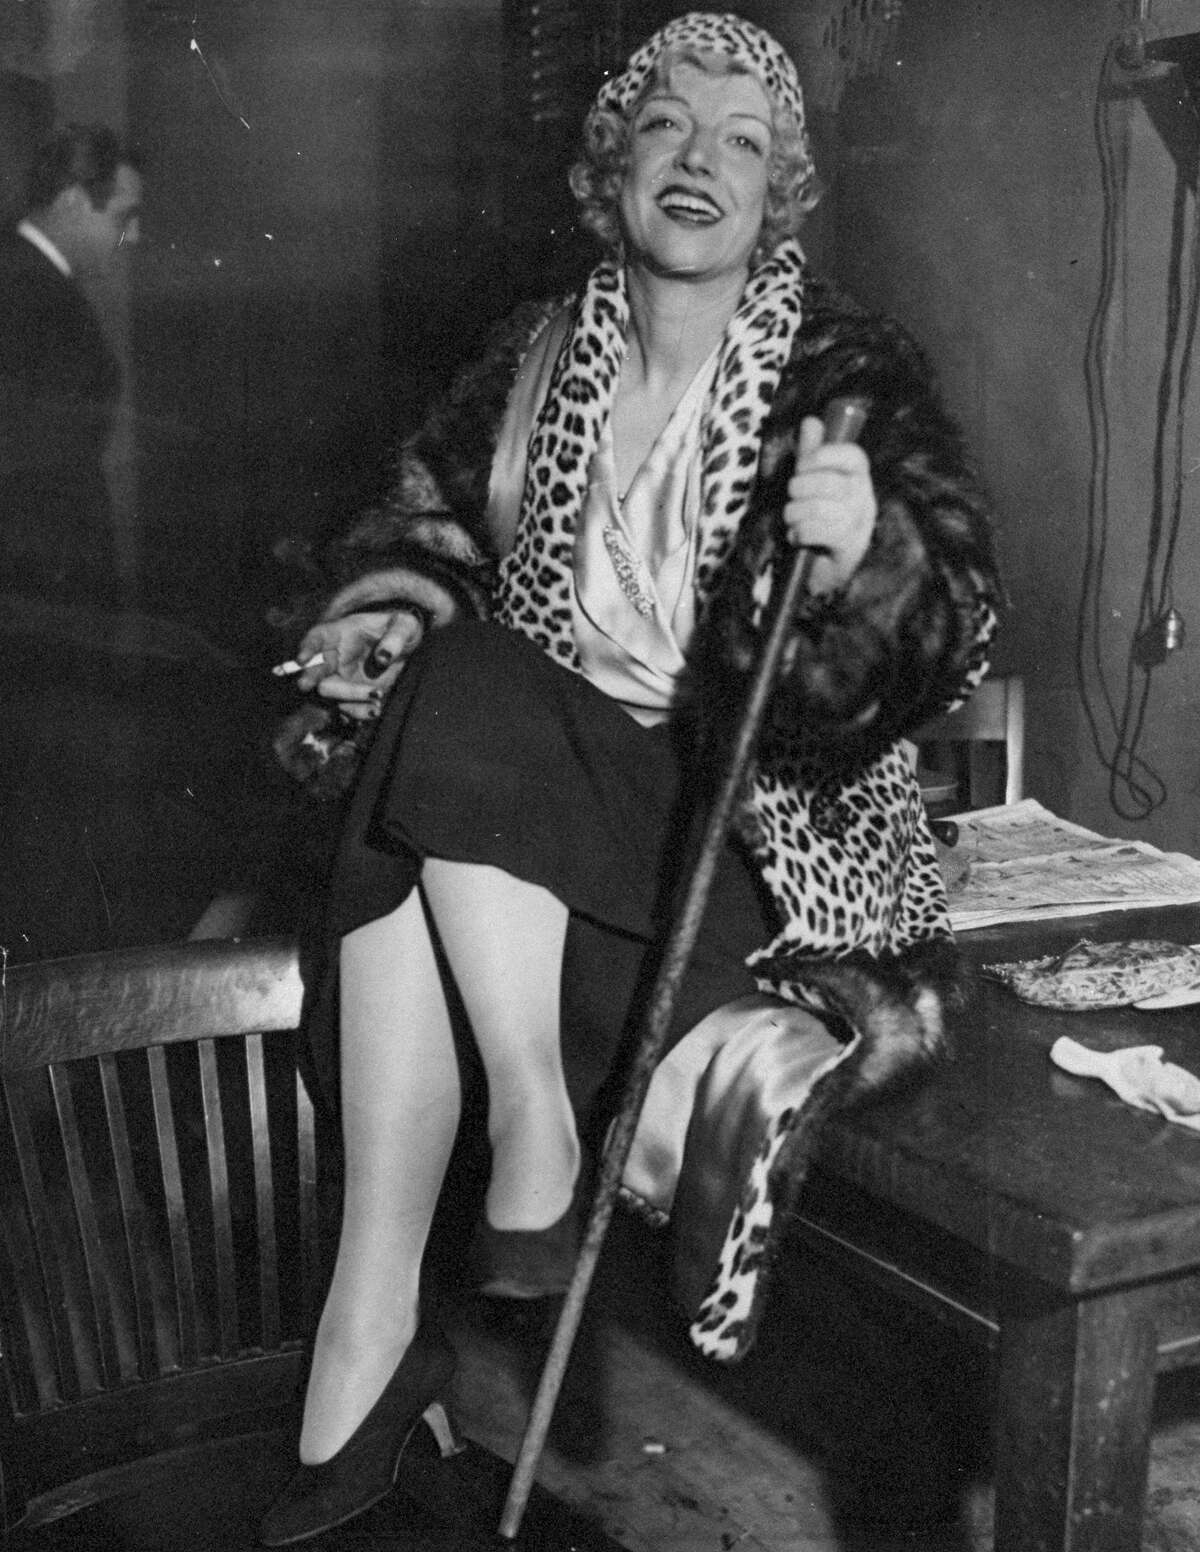 """Mary """"Texas"""" Guinen (1884-1933)The queen of New York's nightlife, Guinan was an actress turned entrepreneur who became known for her speakeasy, The 300 Club, which included scantily clad dancers that were popular with the customers."""